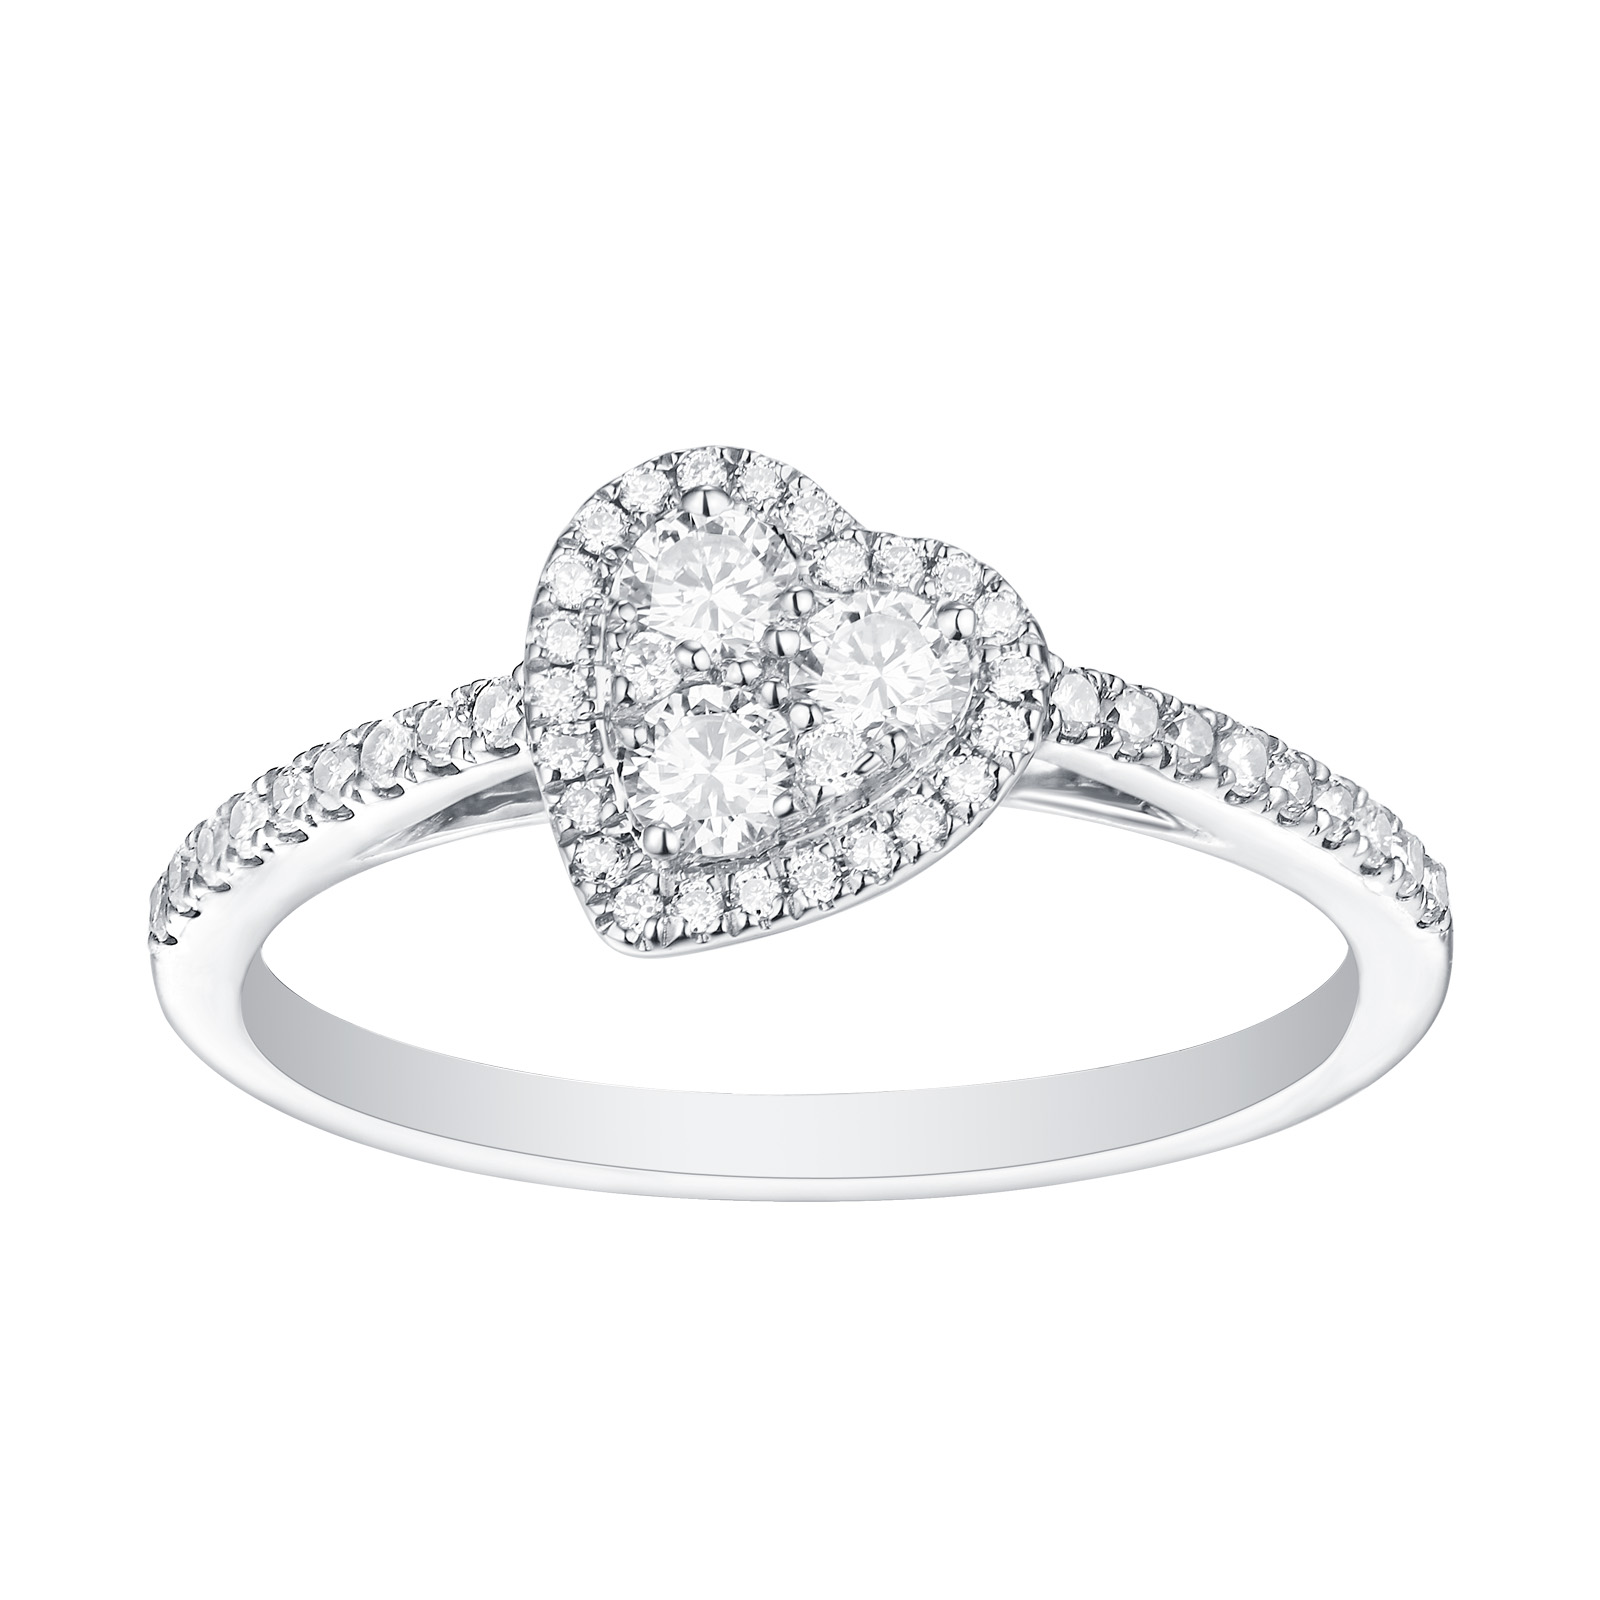 R25919WHT- 14K White Gold Diamond Ring, 0.44 TCW